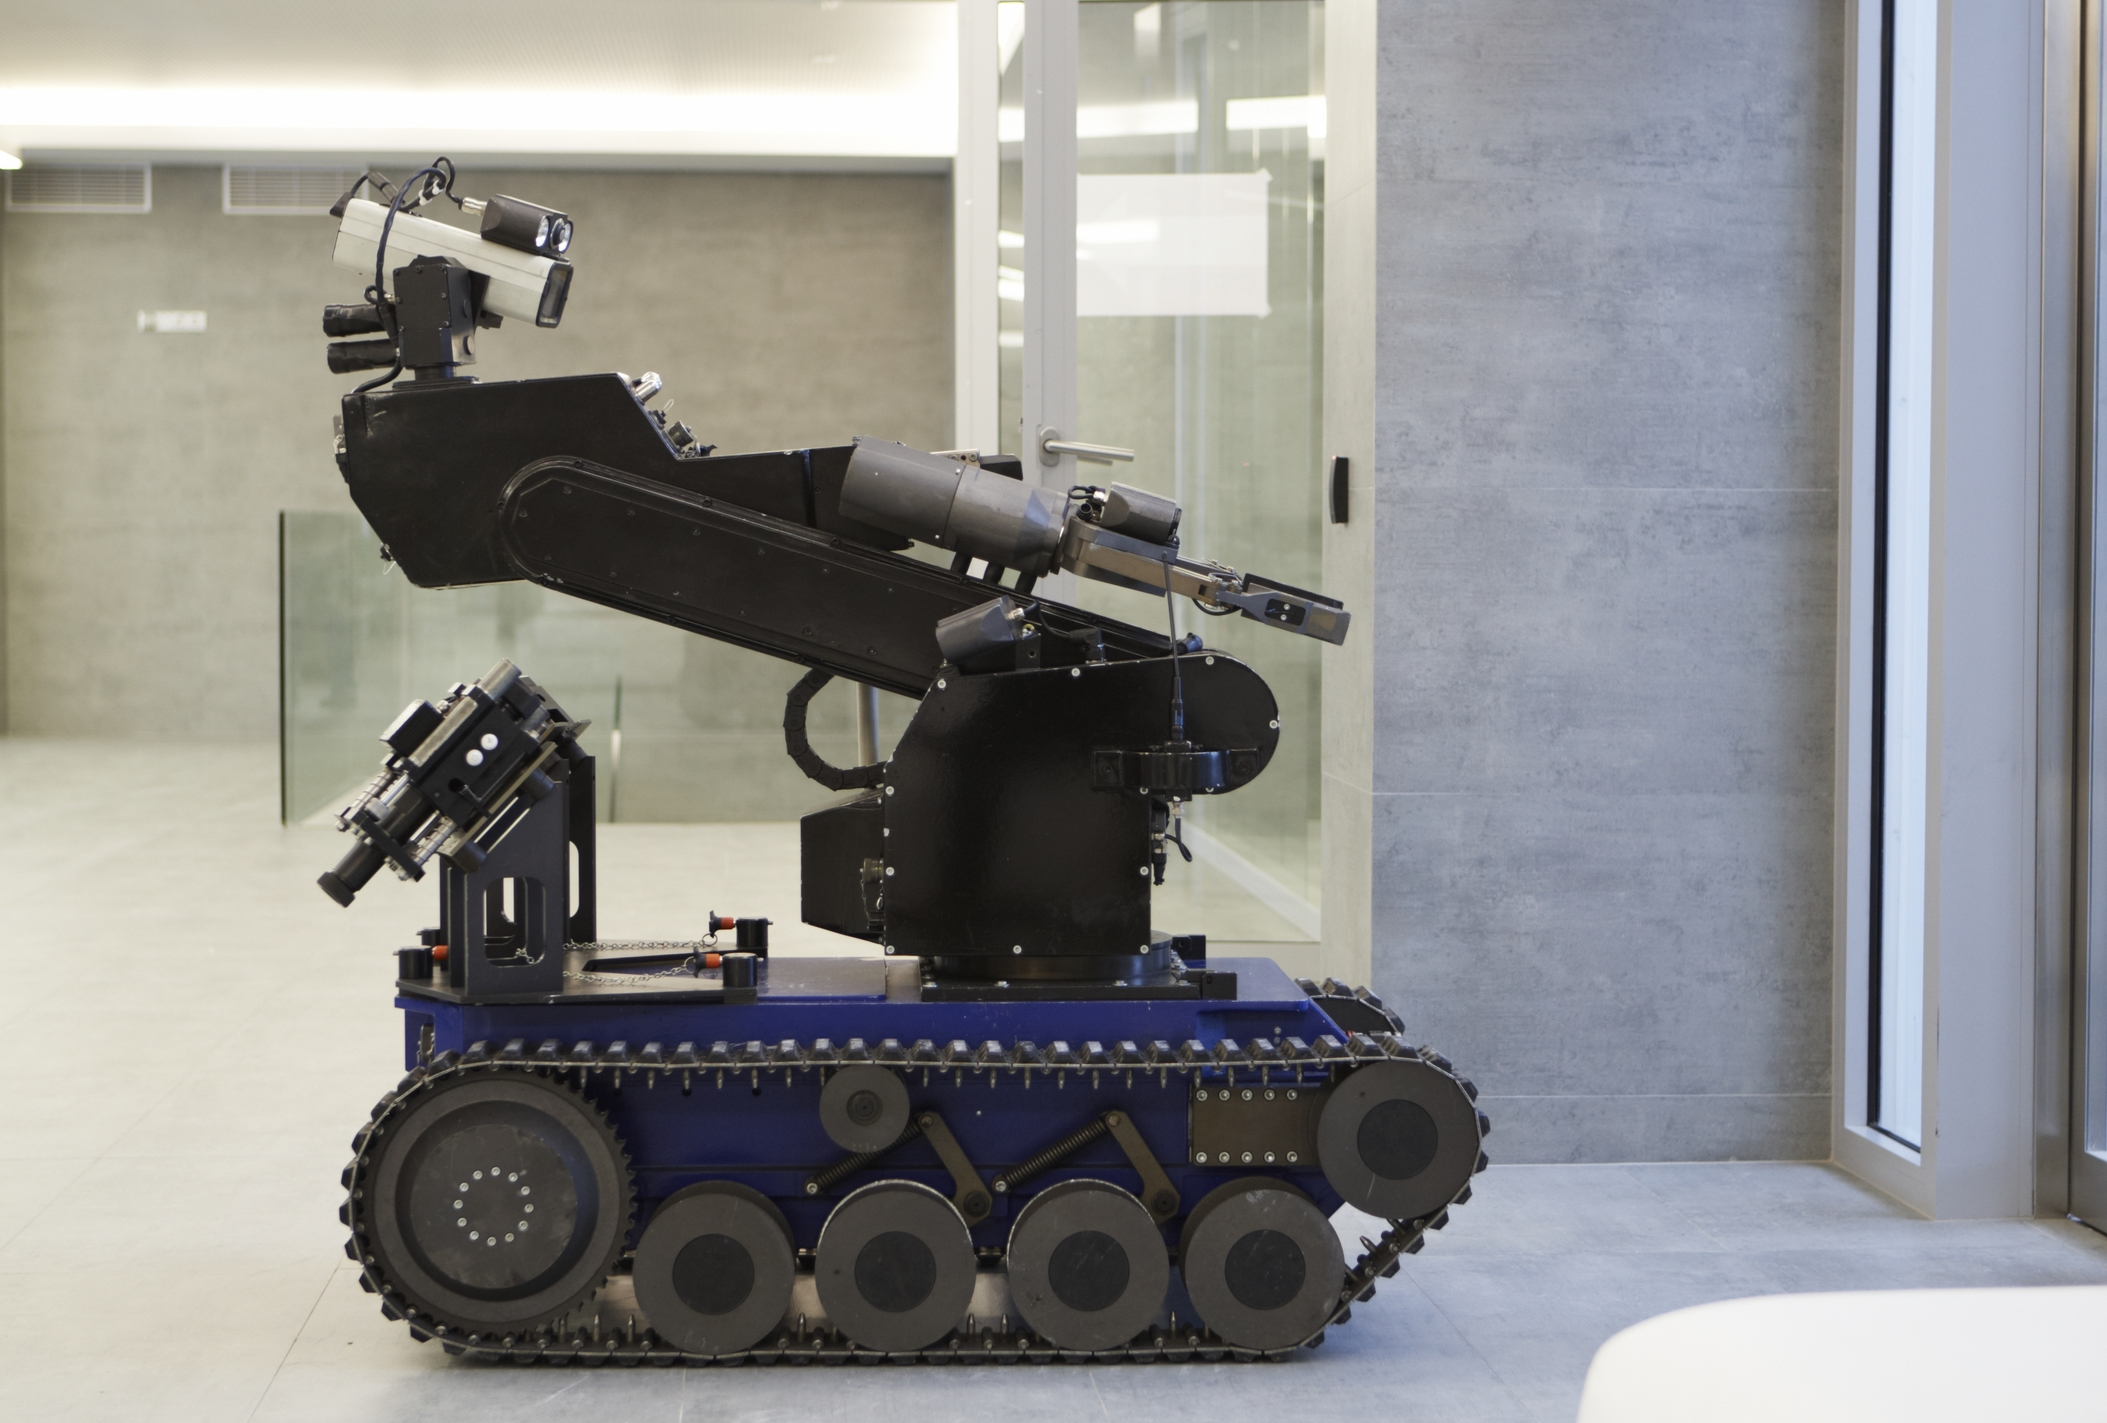 dallas pd used a quotbomb robotquot to neutralize alleged cop